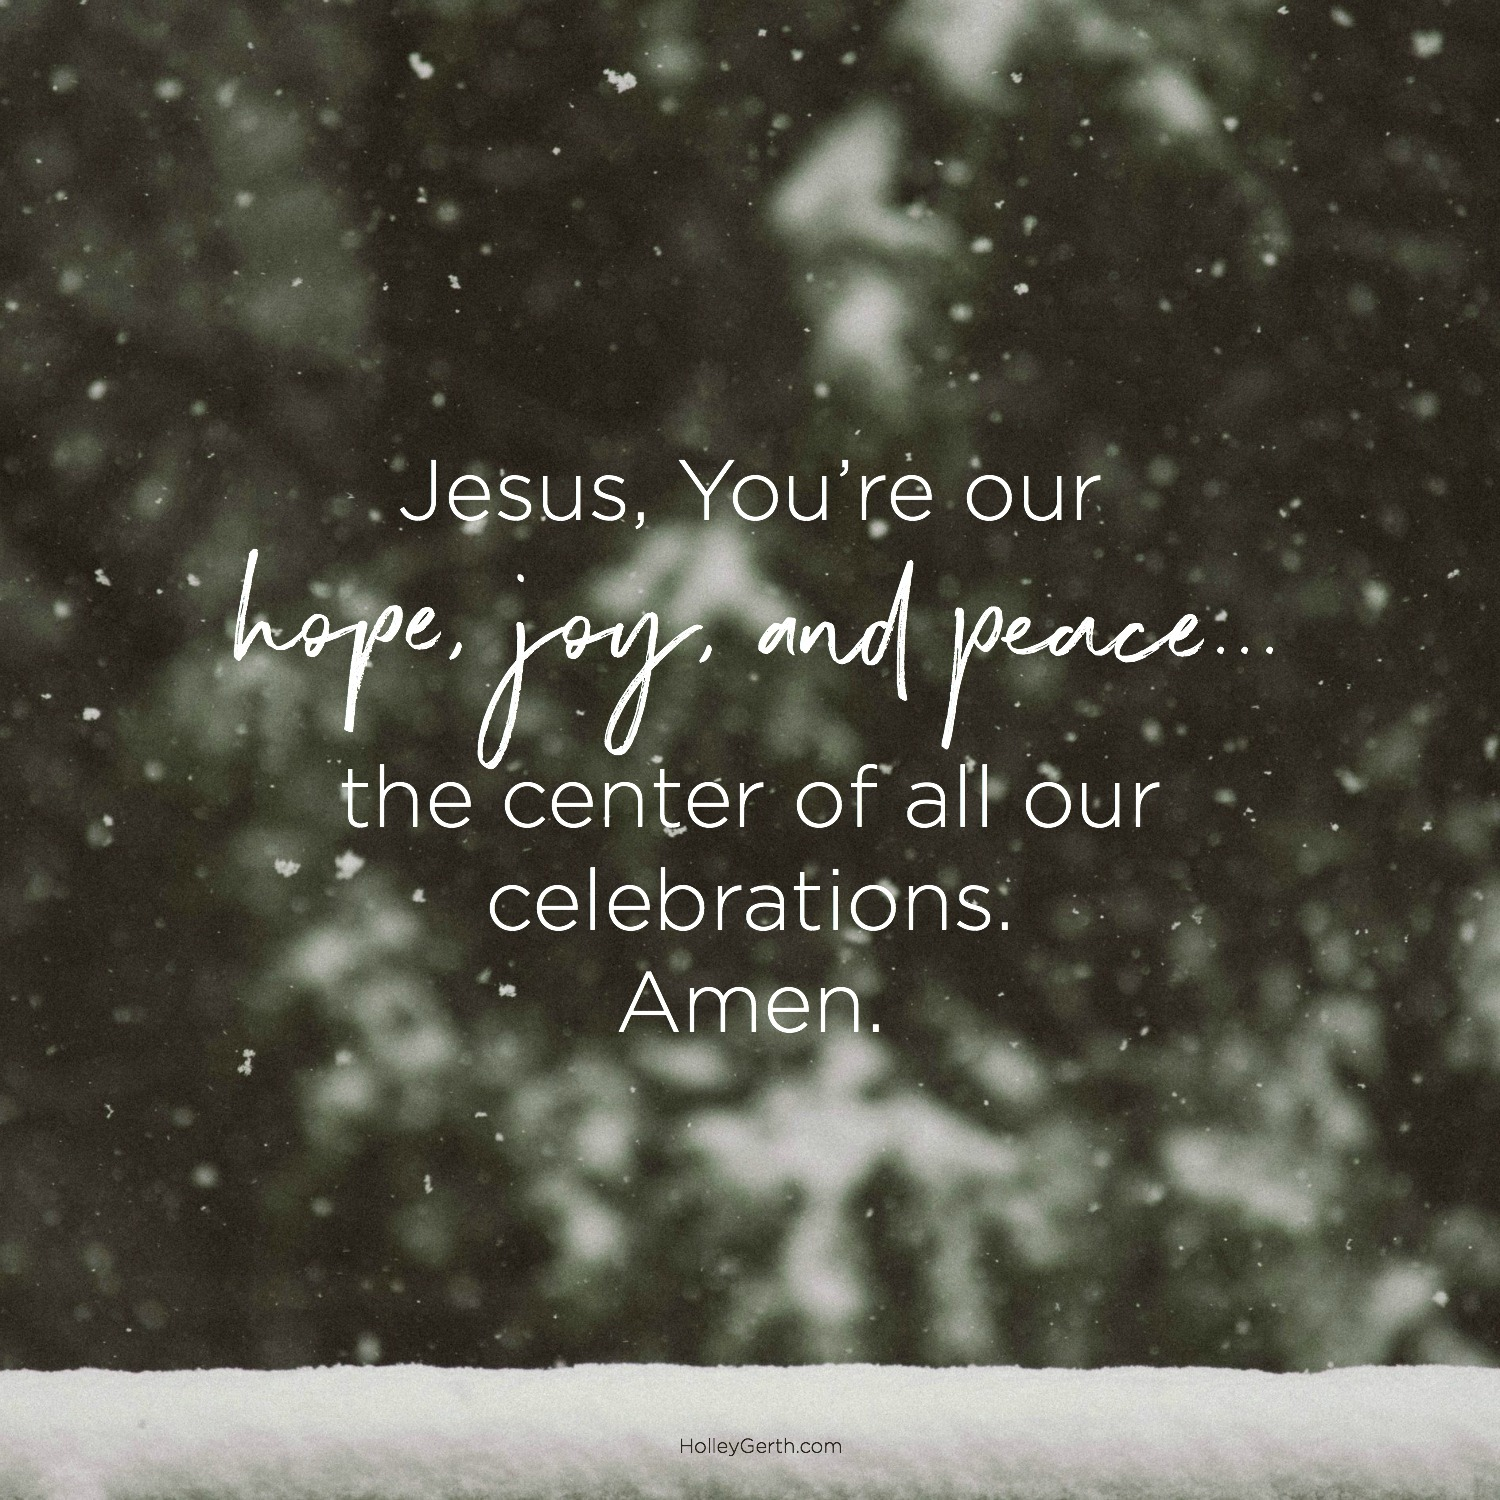 Jesus, You're our hope, joy and peace… the center of all our celebrations. Amen.